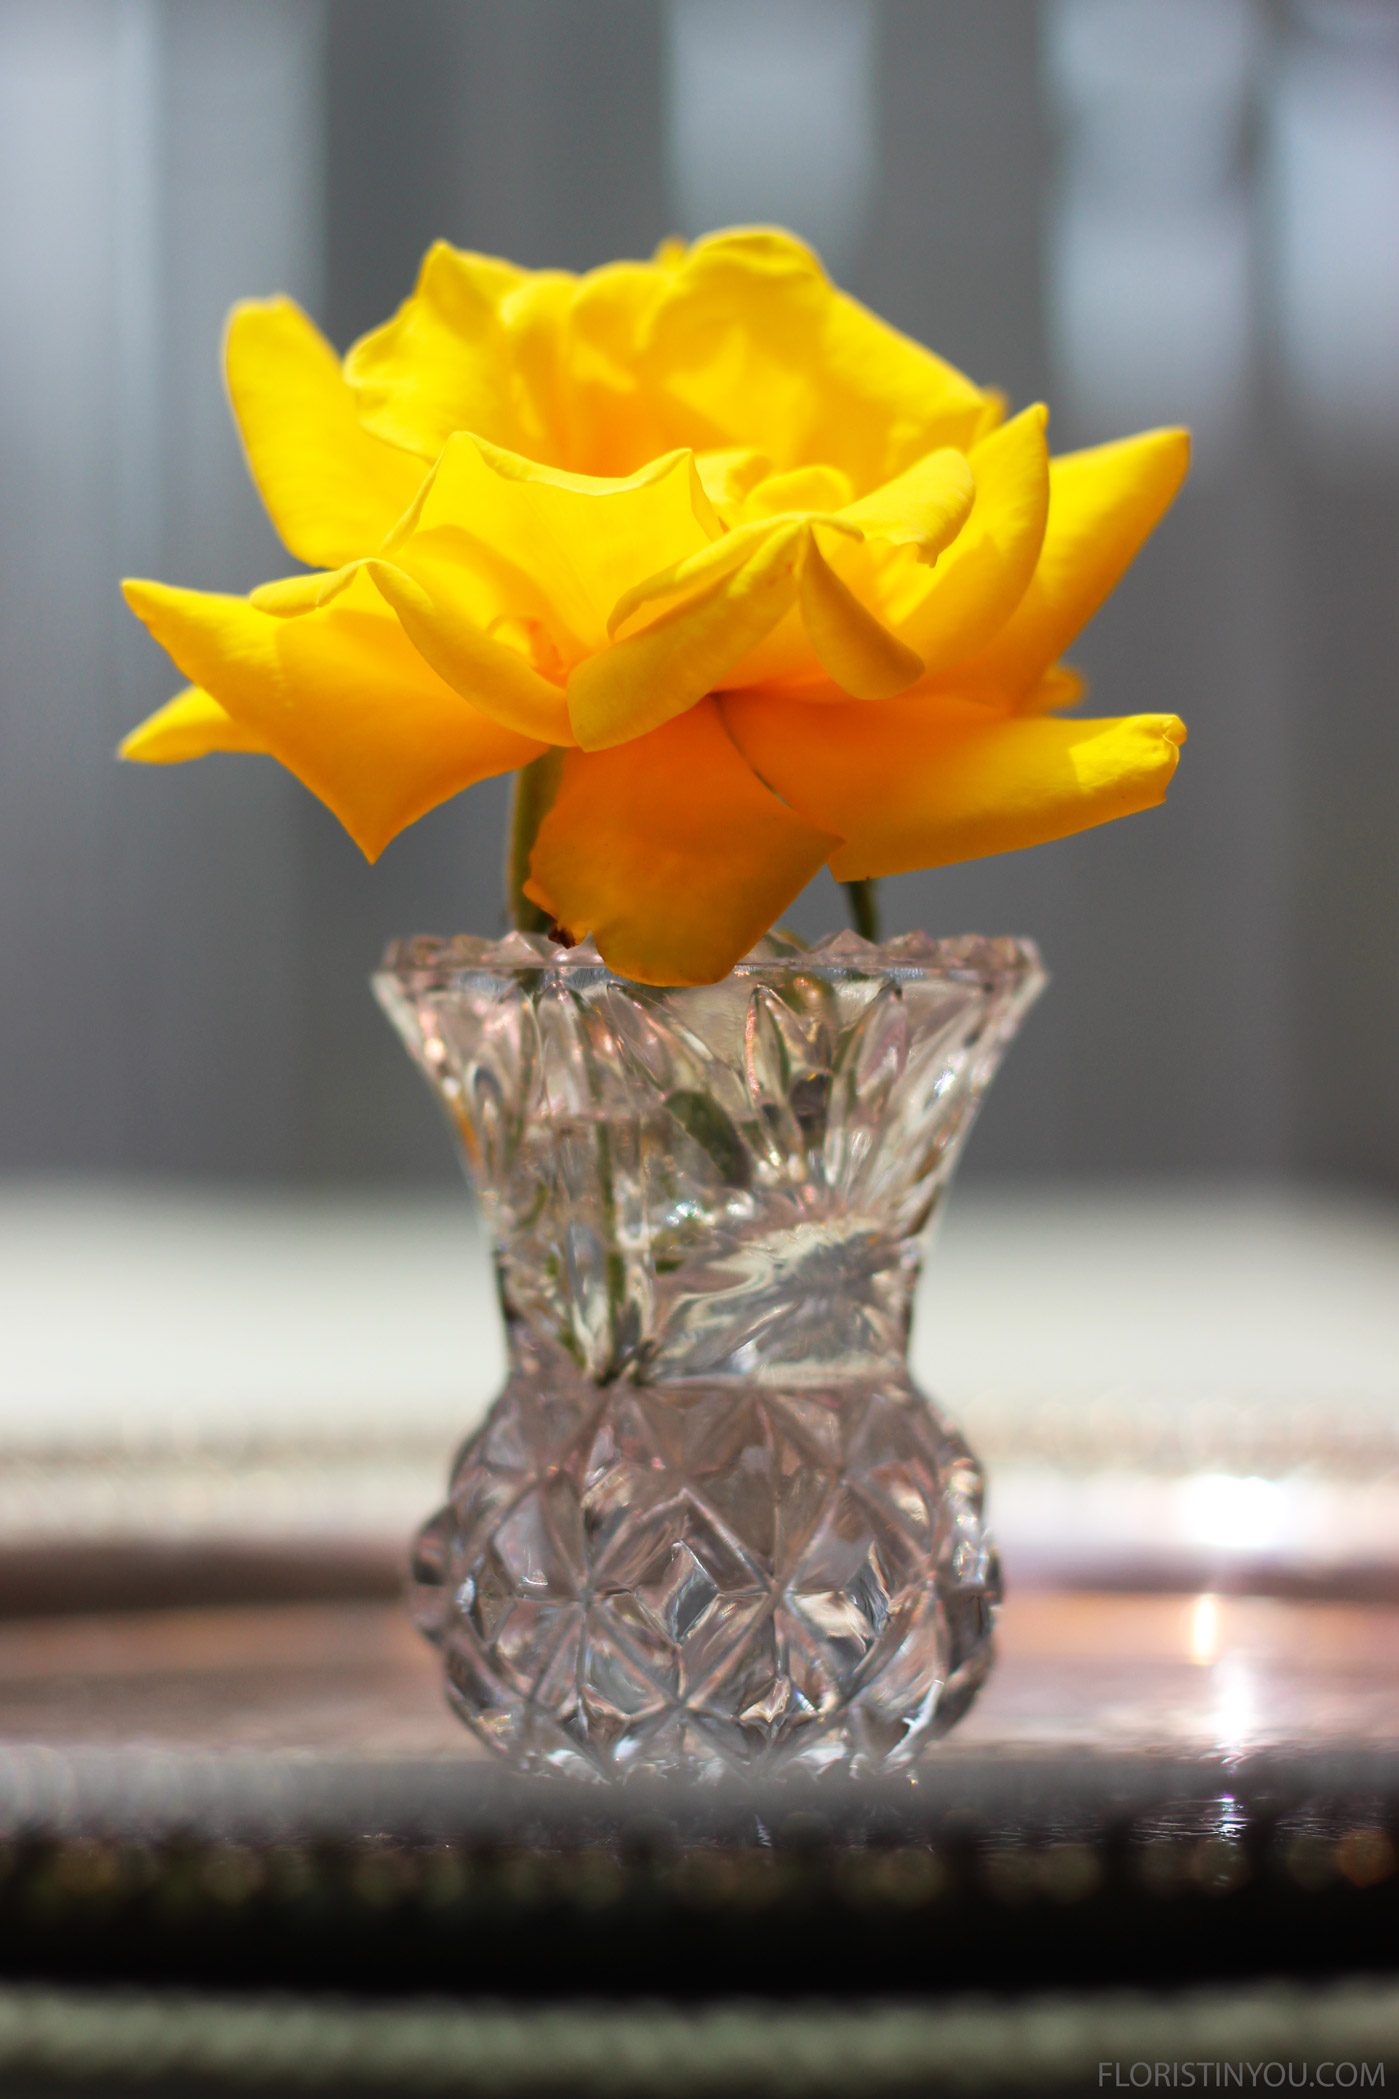 Put a small bloom in a 2.5 inch micro crystal vase. This is a small rose.